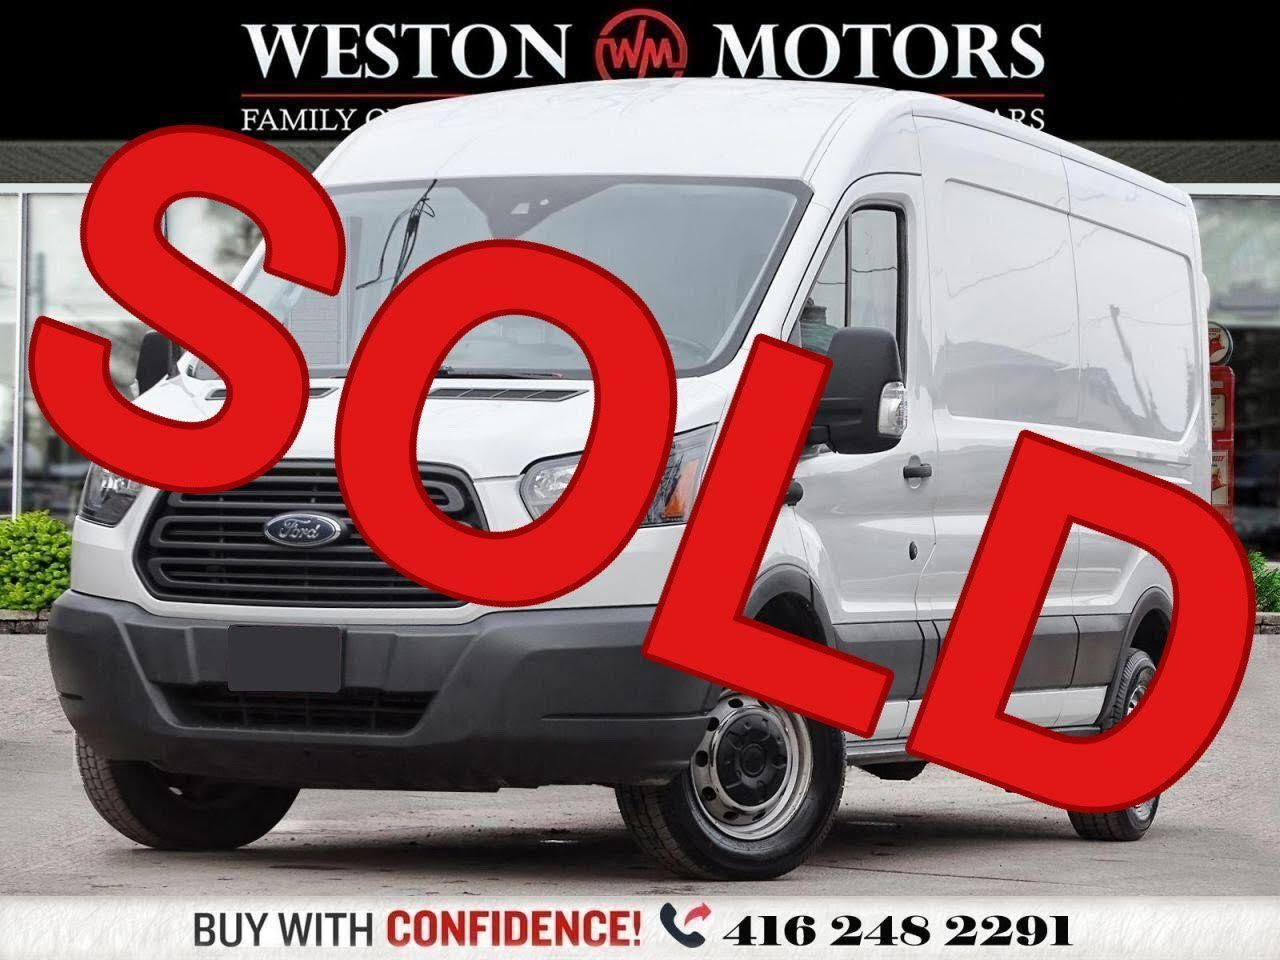 2018 Ford Transit 150 MIDROOF*3.7L*148 EXTENDED WHEEL BASE*REVERSE CAM